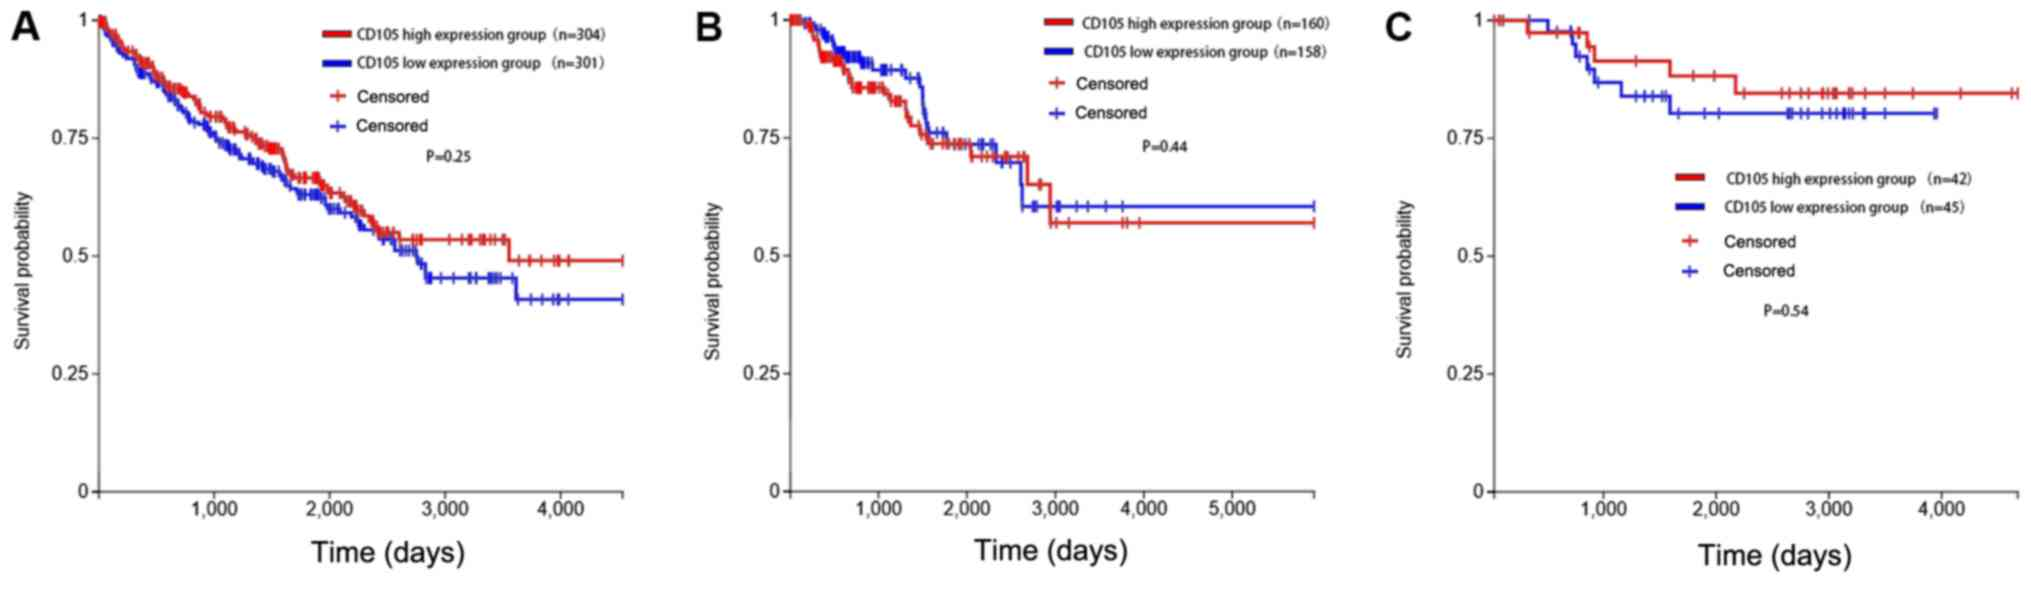 Expression and clinical value of CD105 in renal cell